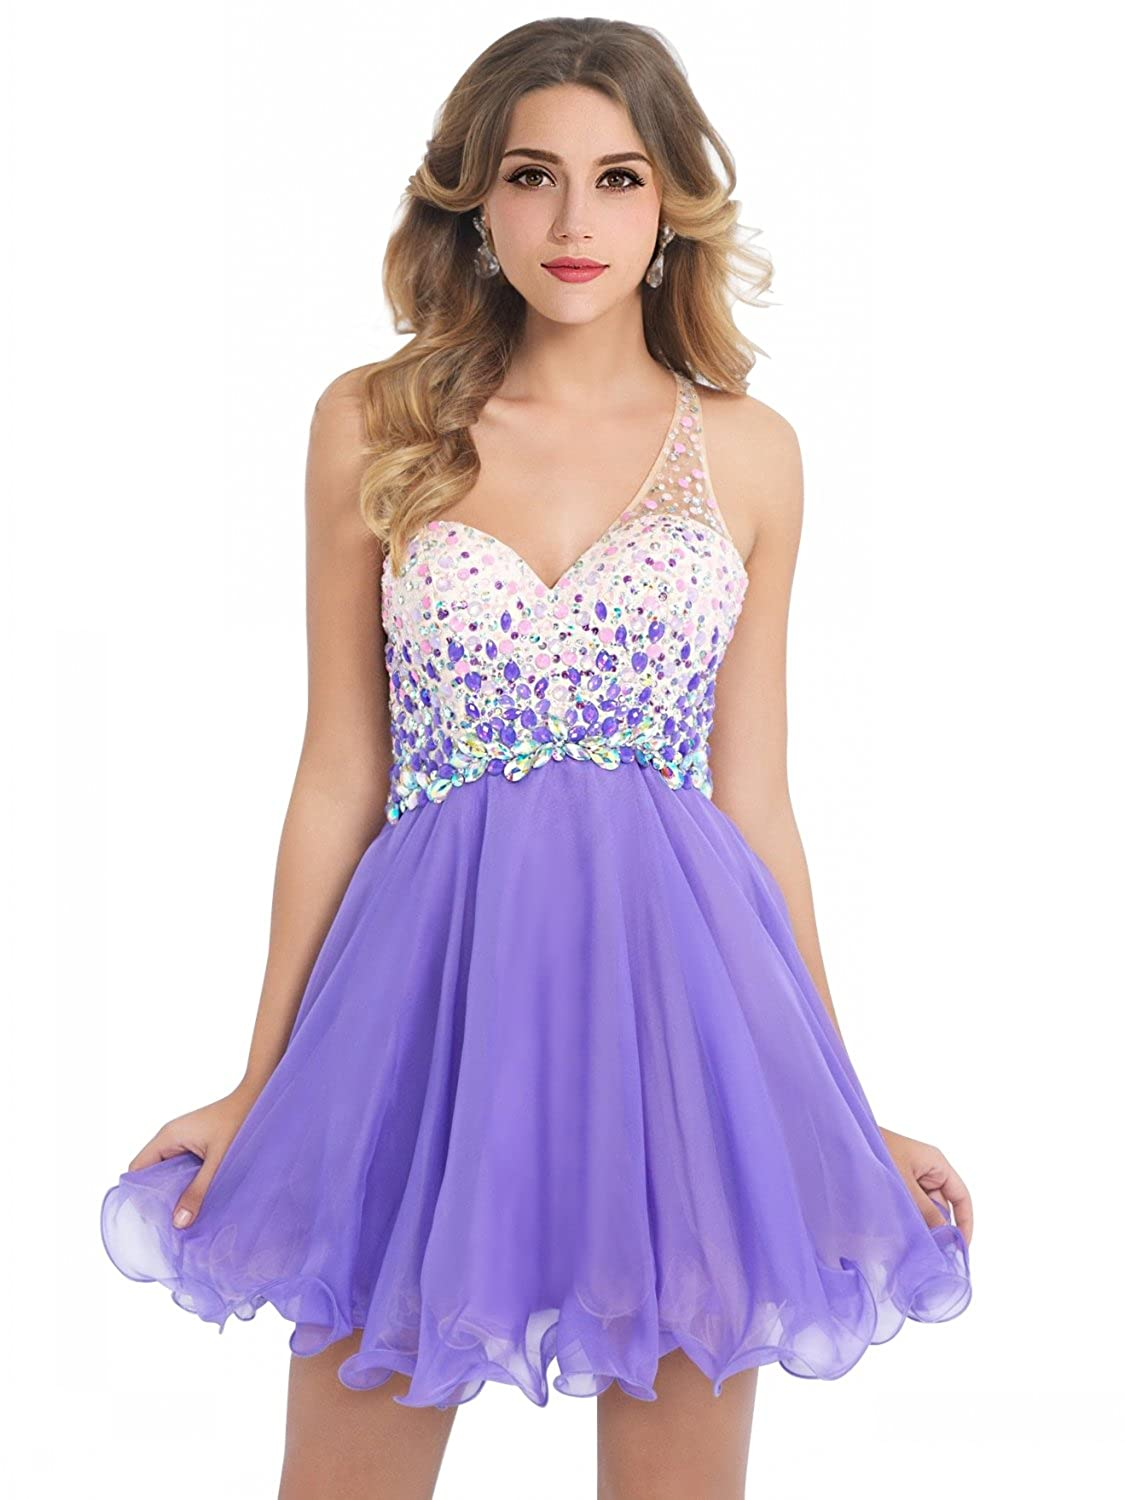 91c4cadcb MisShow Women's Short Beaded Prom Dress Sweetheart Homecoming Dress Ball  Gown at Amazon Women's Clothing store: